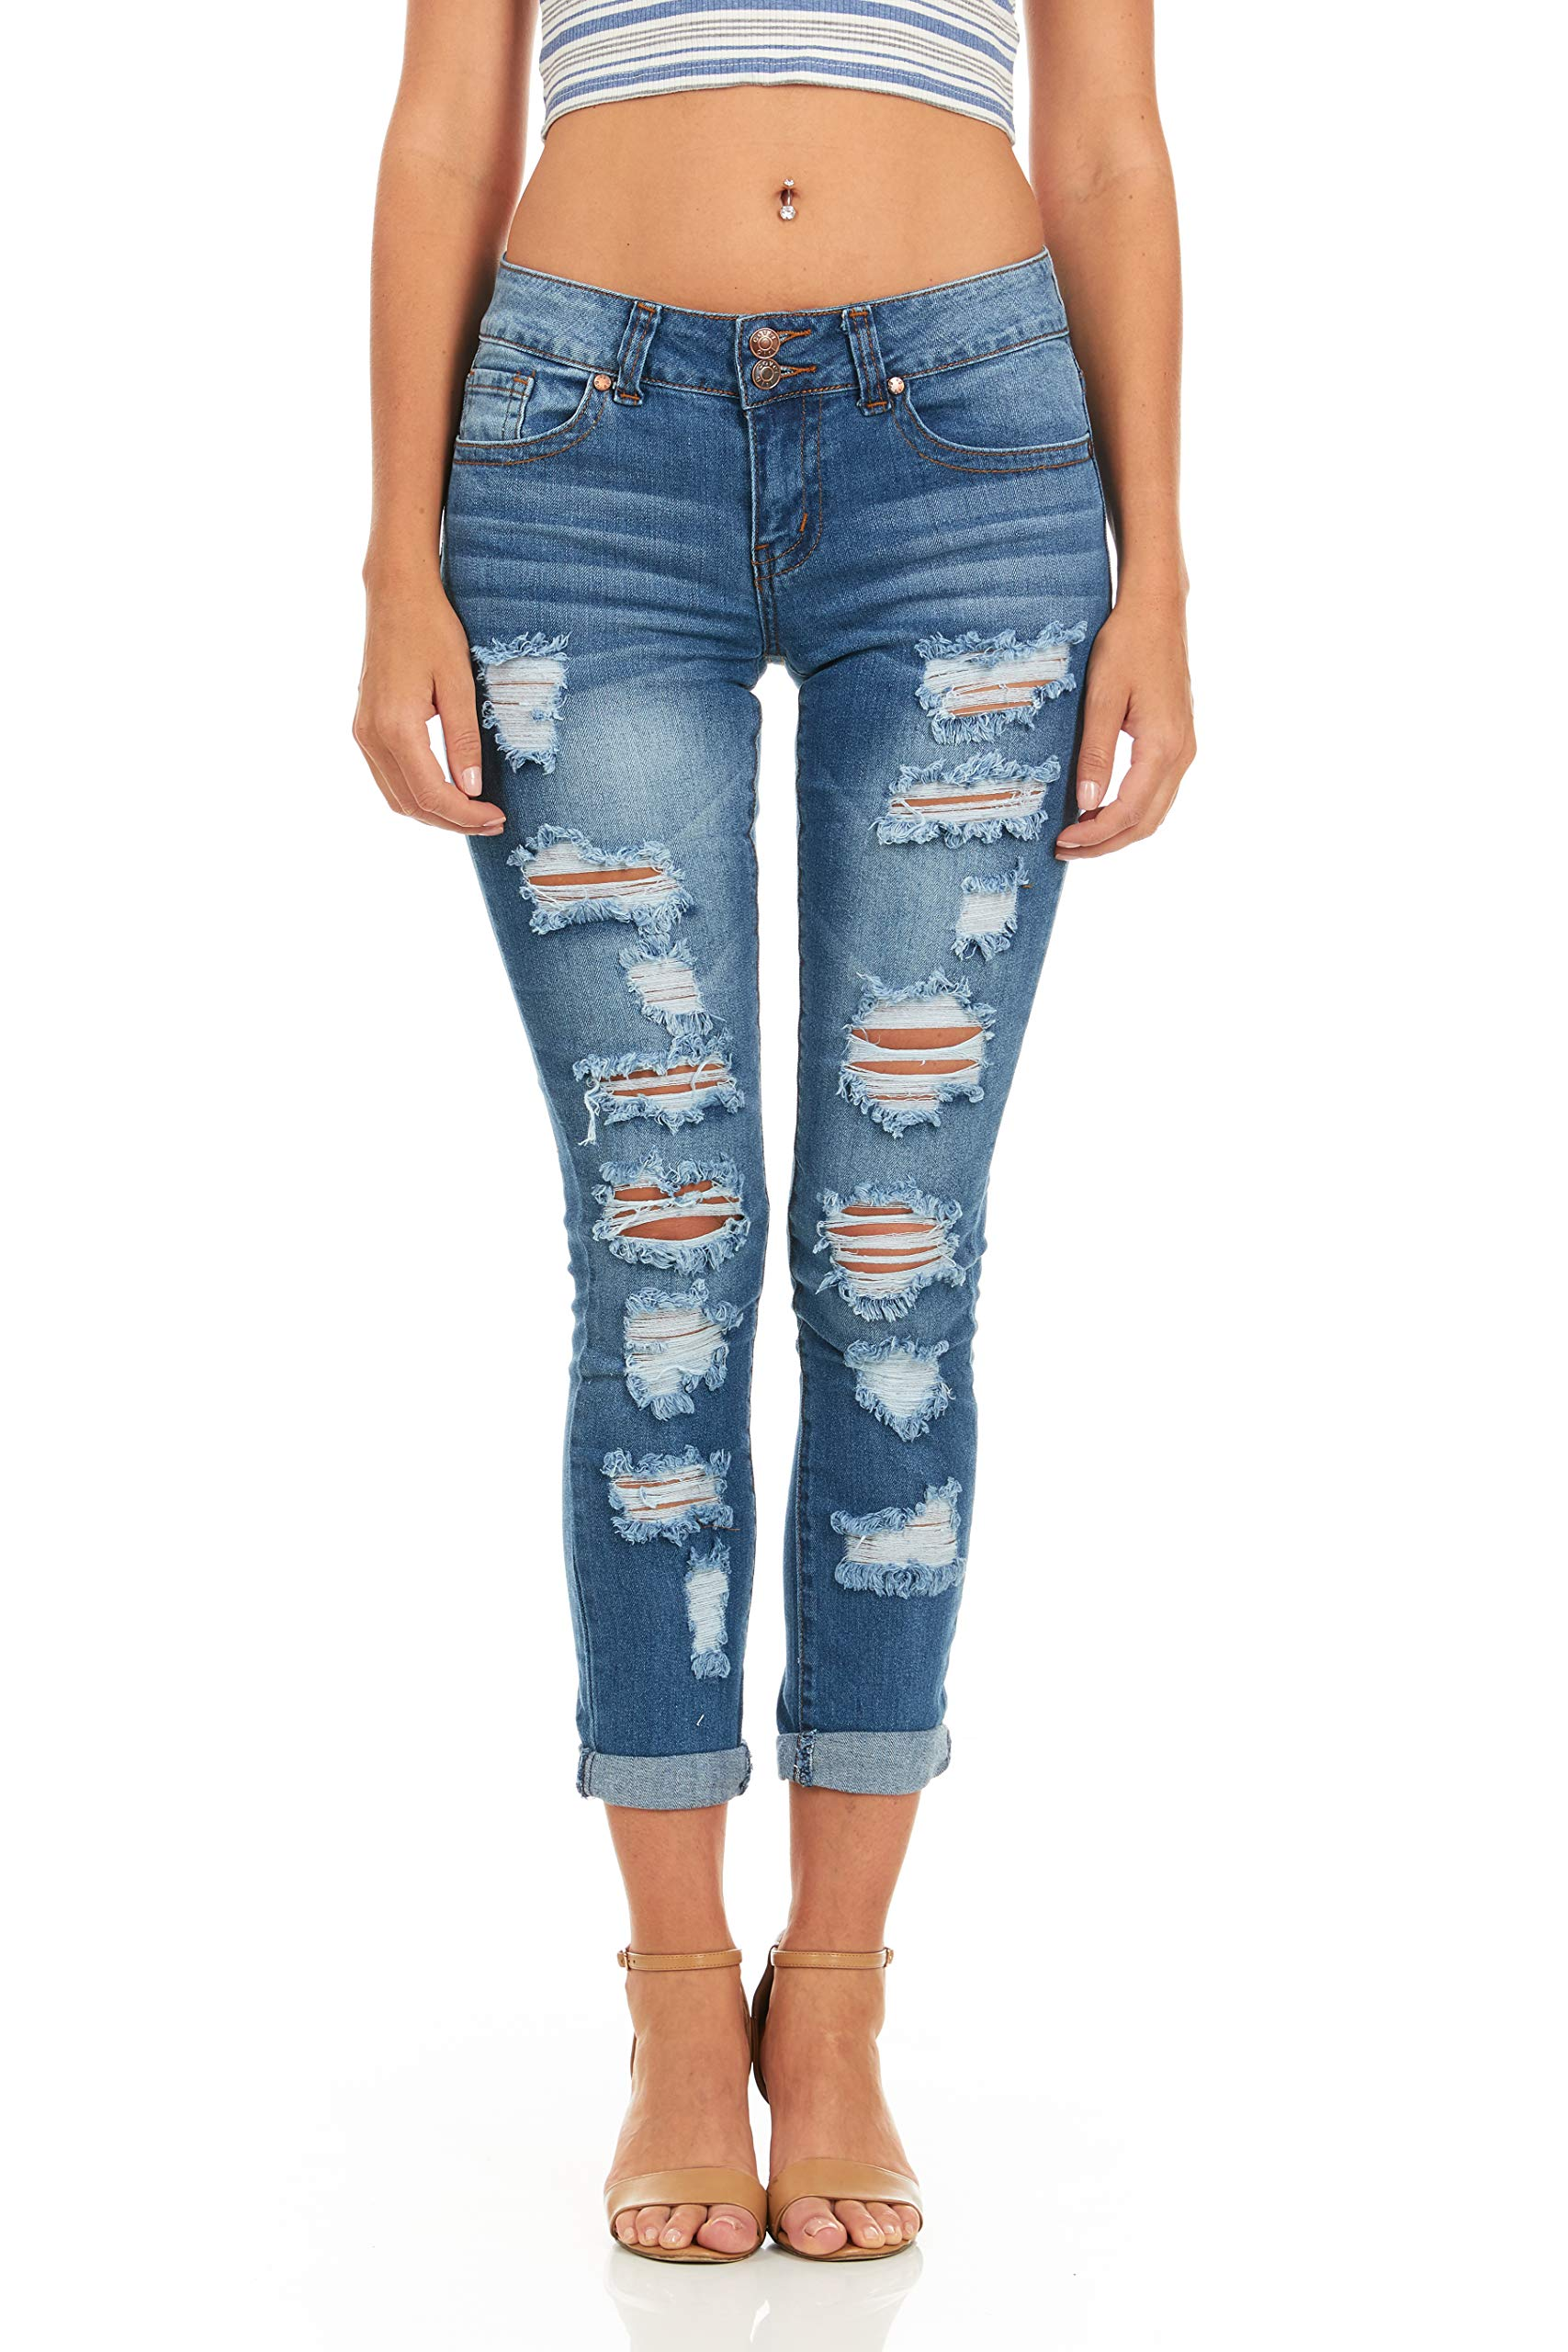 Cover Girl Skinny Ripped Jeans for Women Distressed Blue, Electric, 15 by Cover Girl (Image #1)